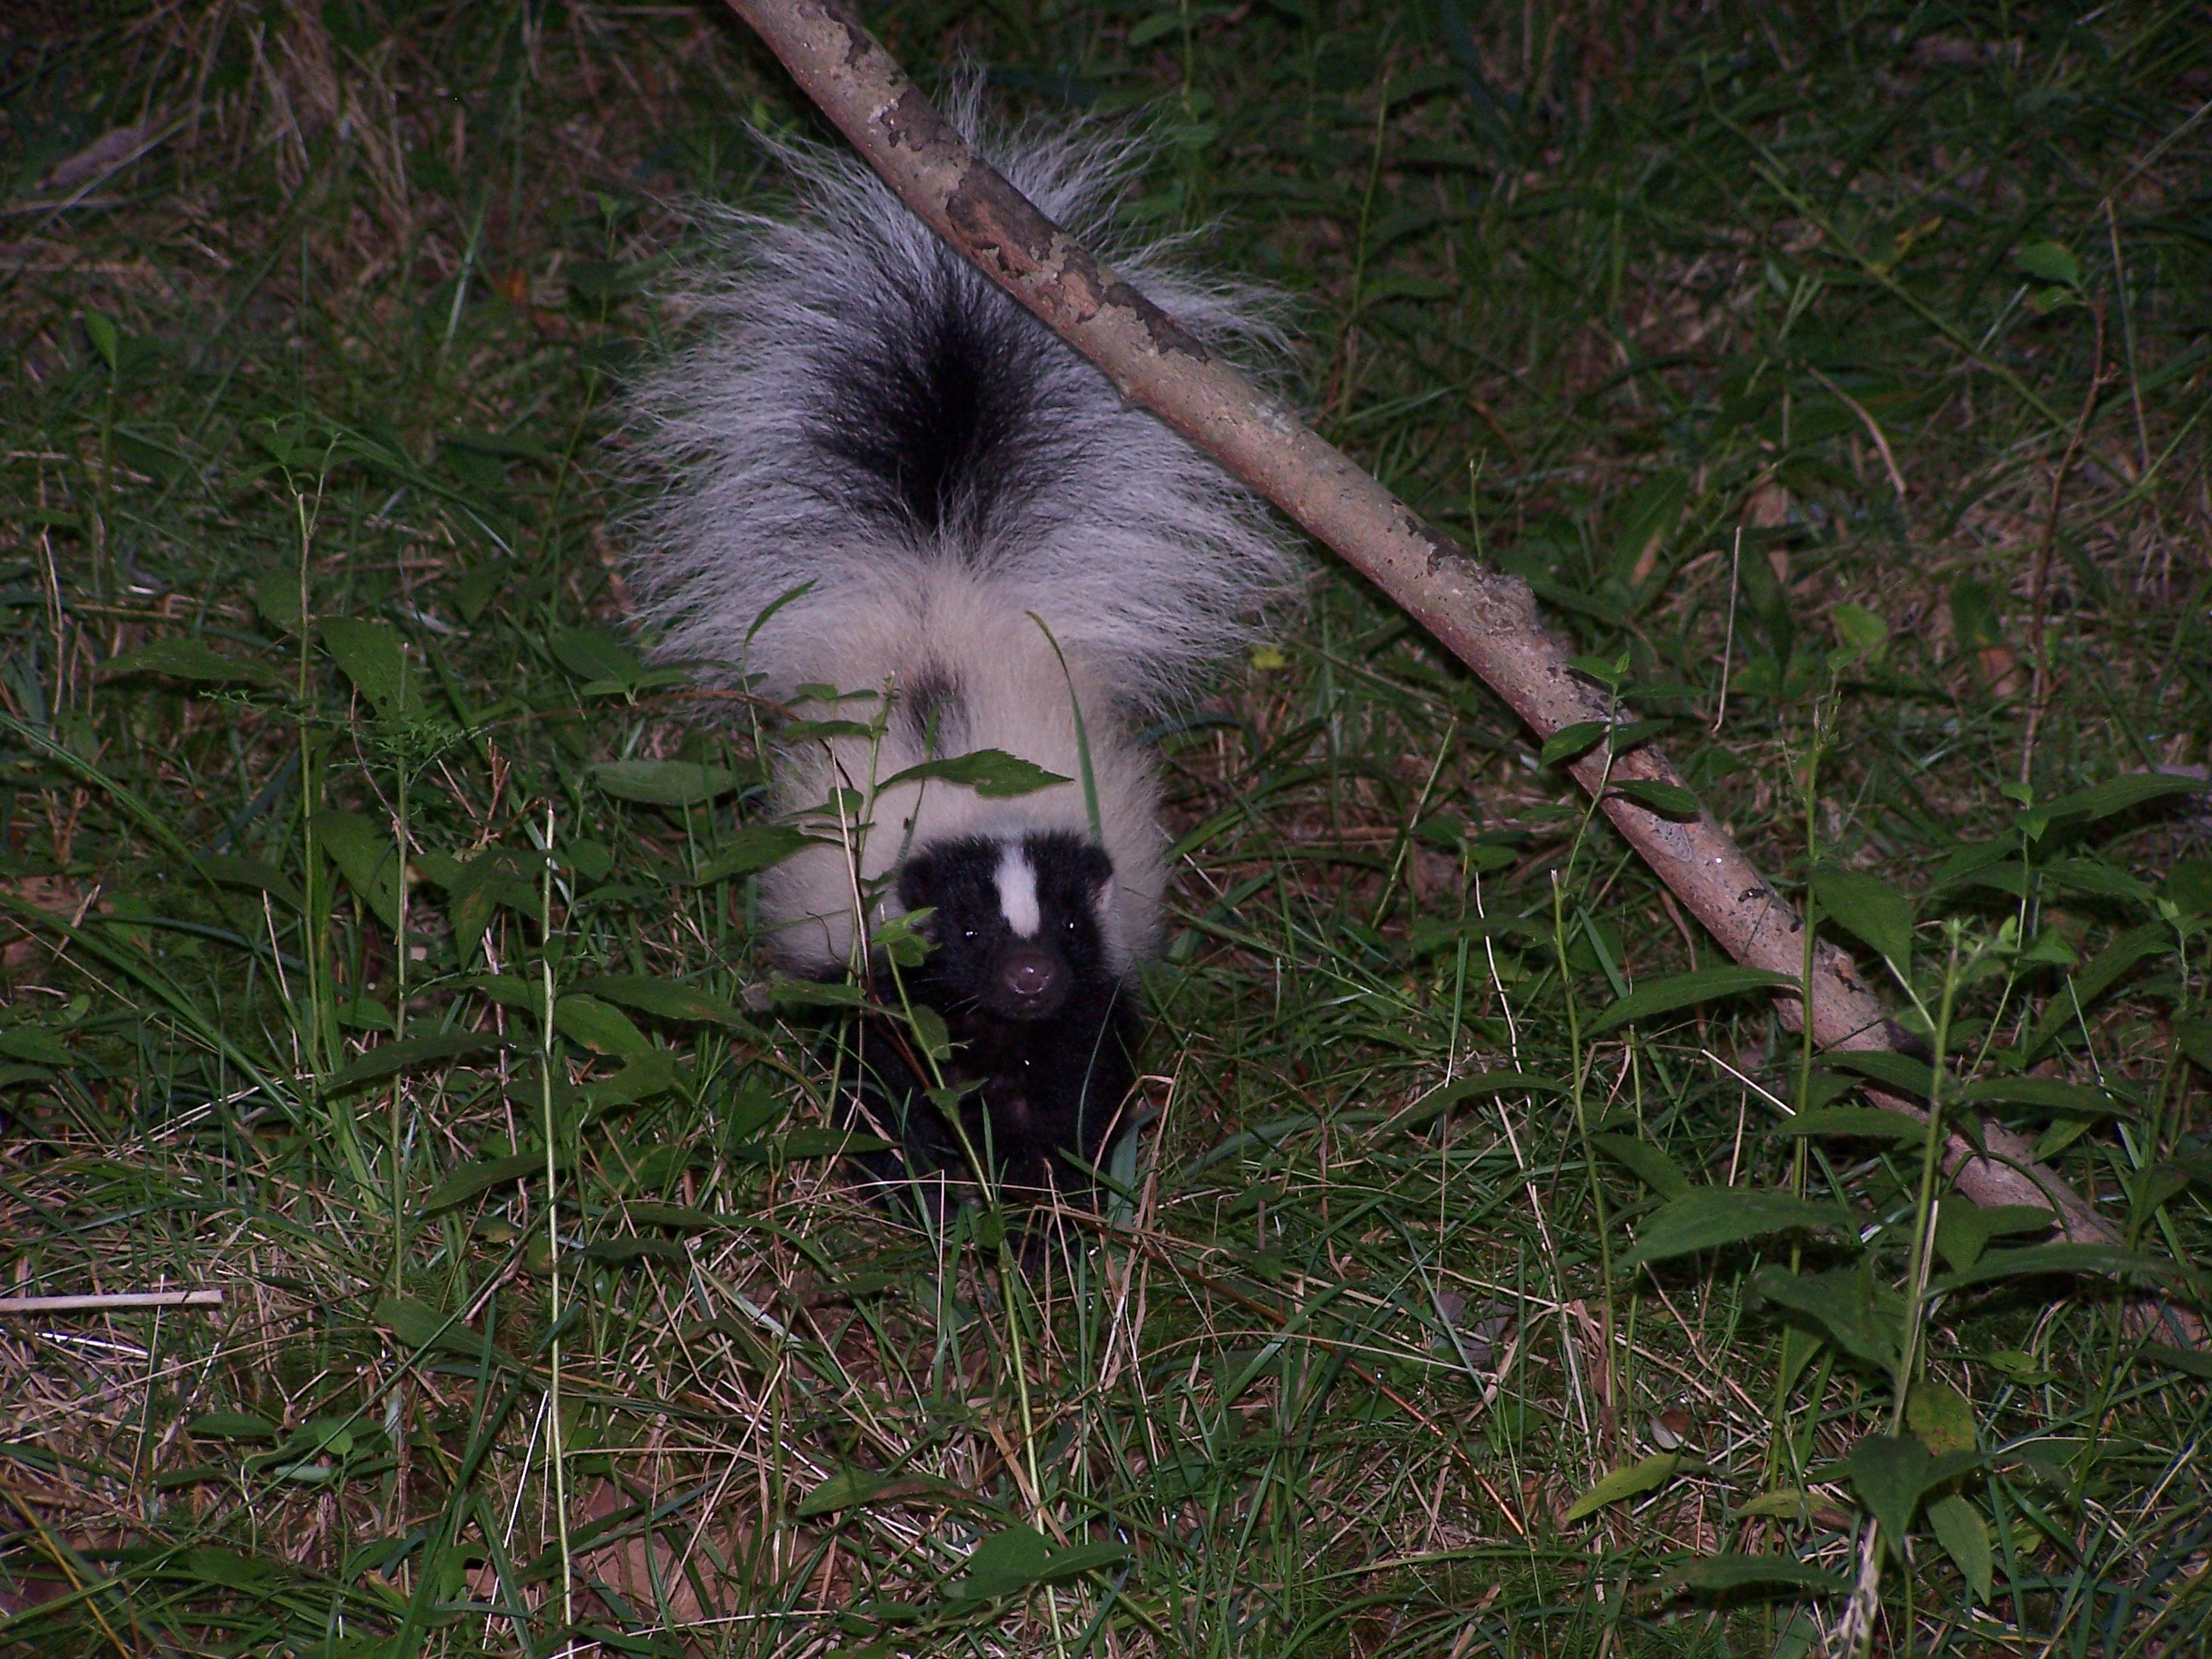 How To Get Rid Of Skunks Rf Wildlife Control 860 510 6313